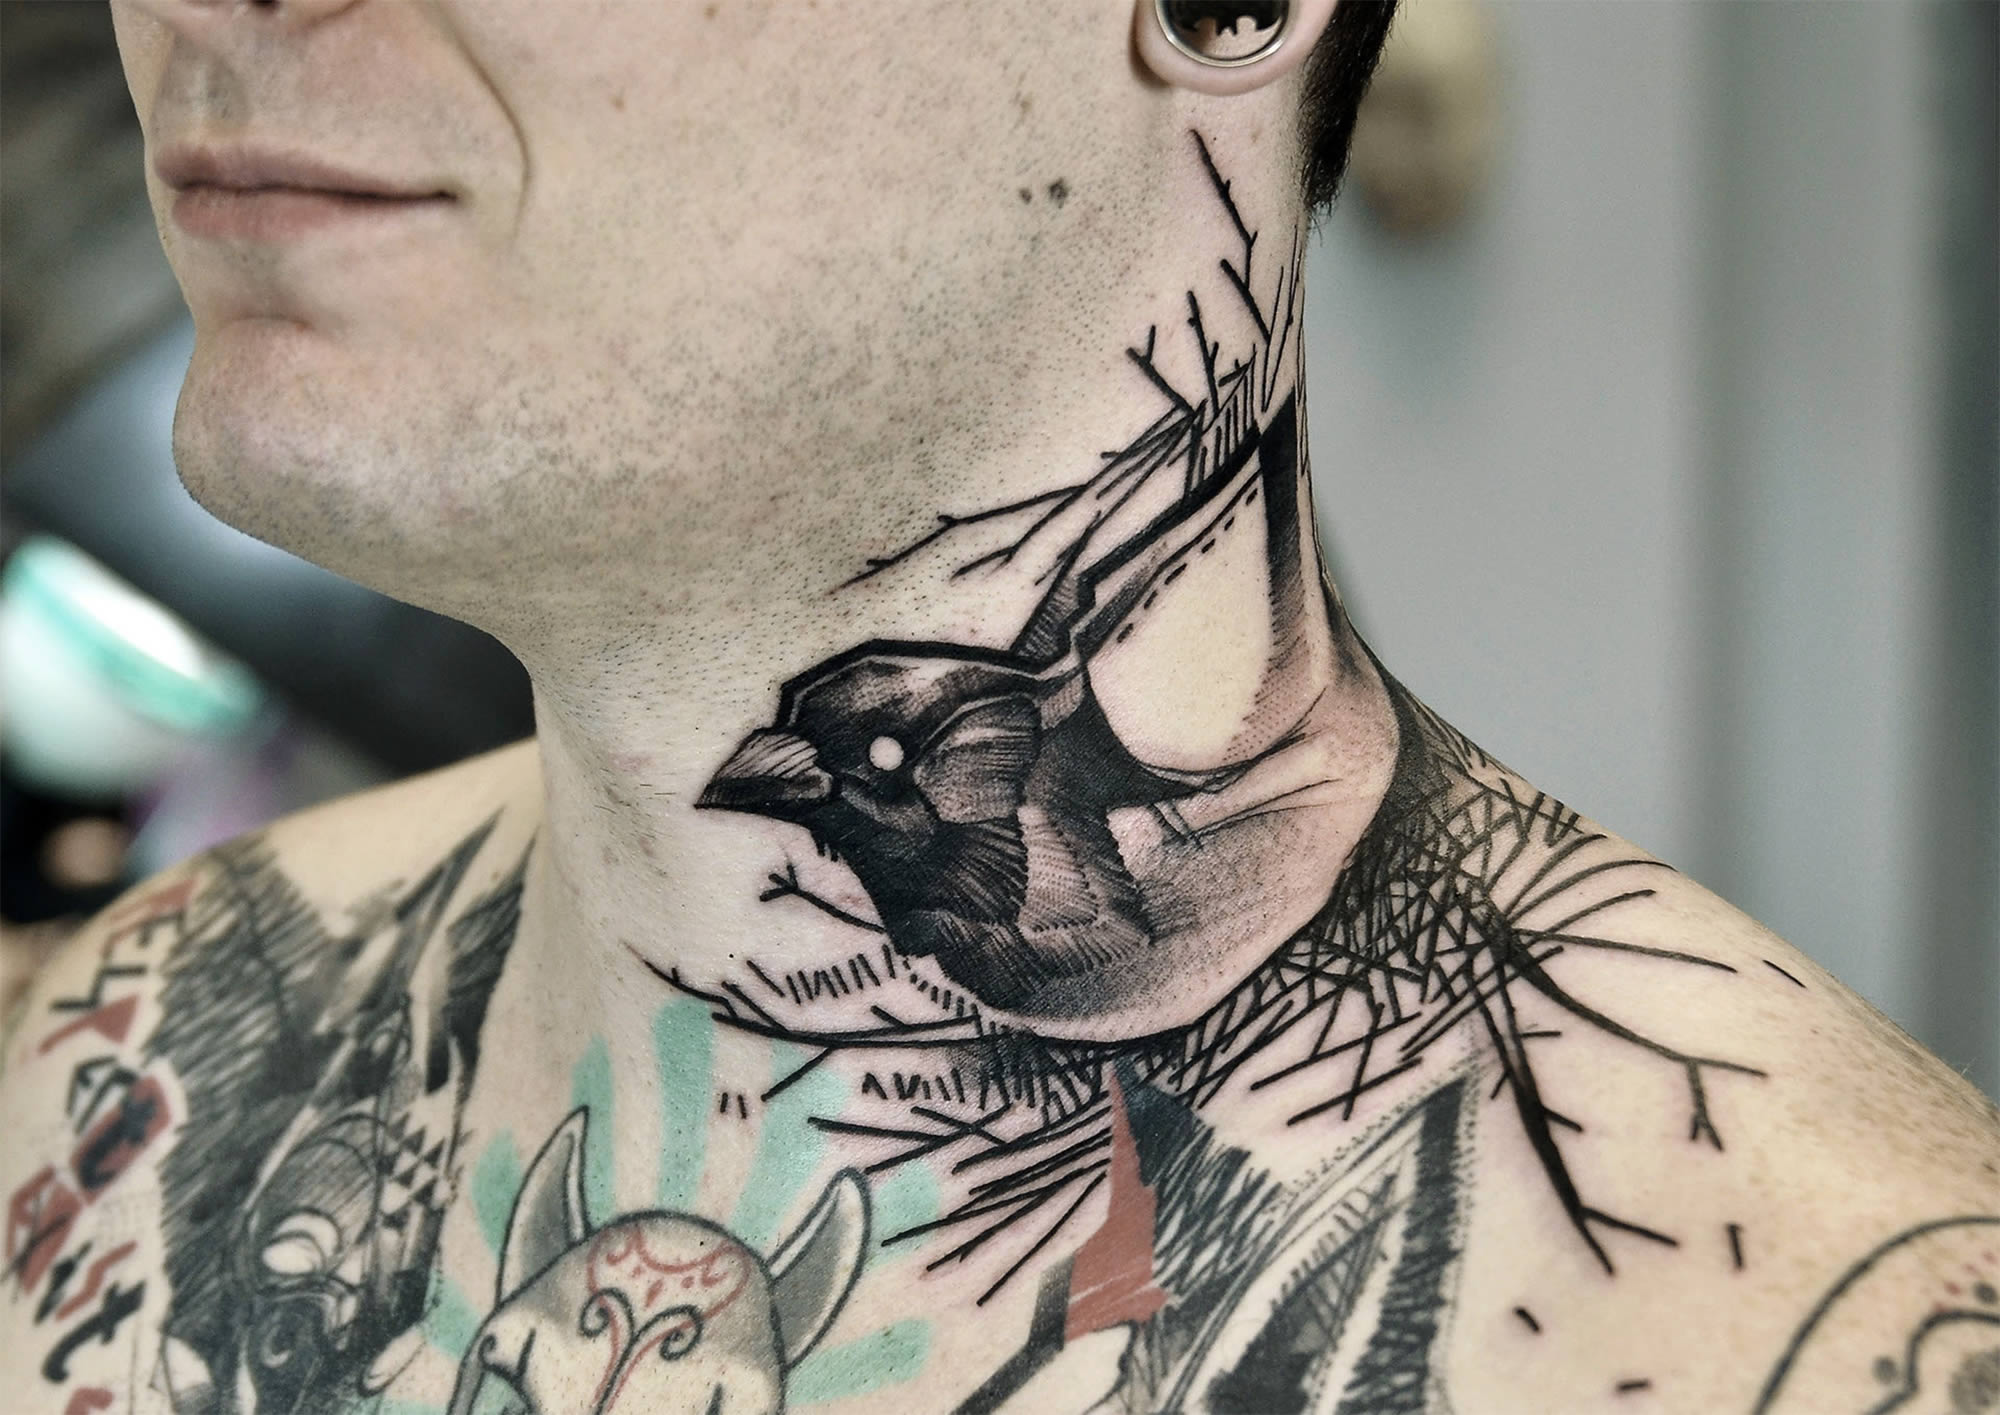 Forest-Inspired Tattoos and Drawings by Katarzyna Krutak